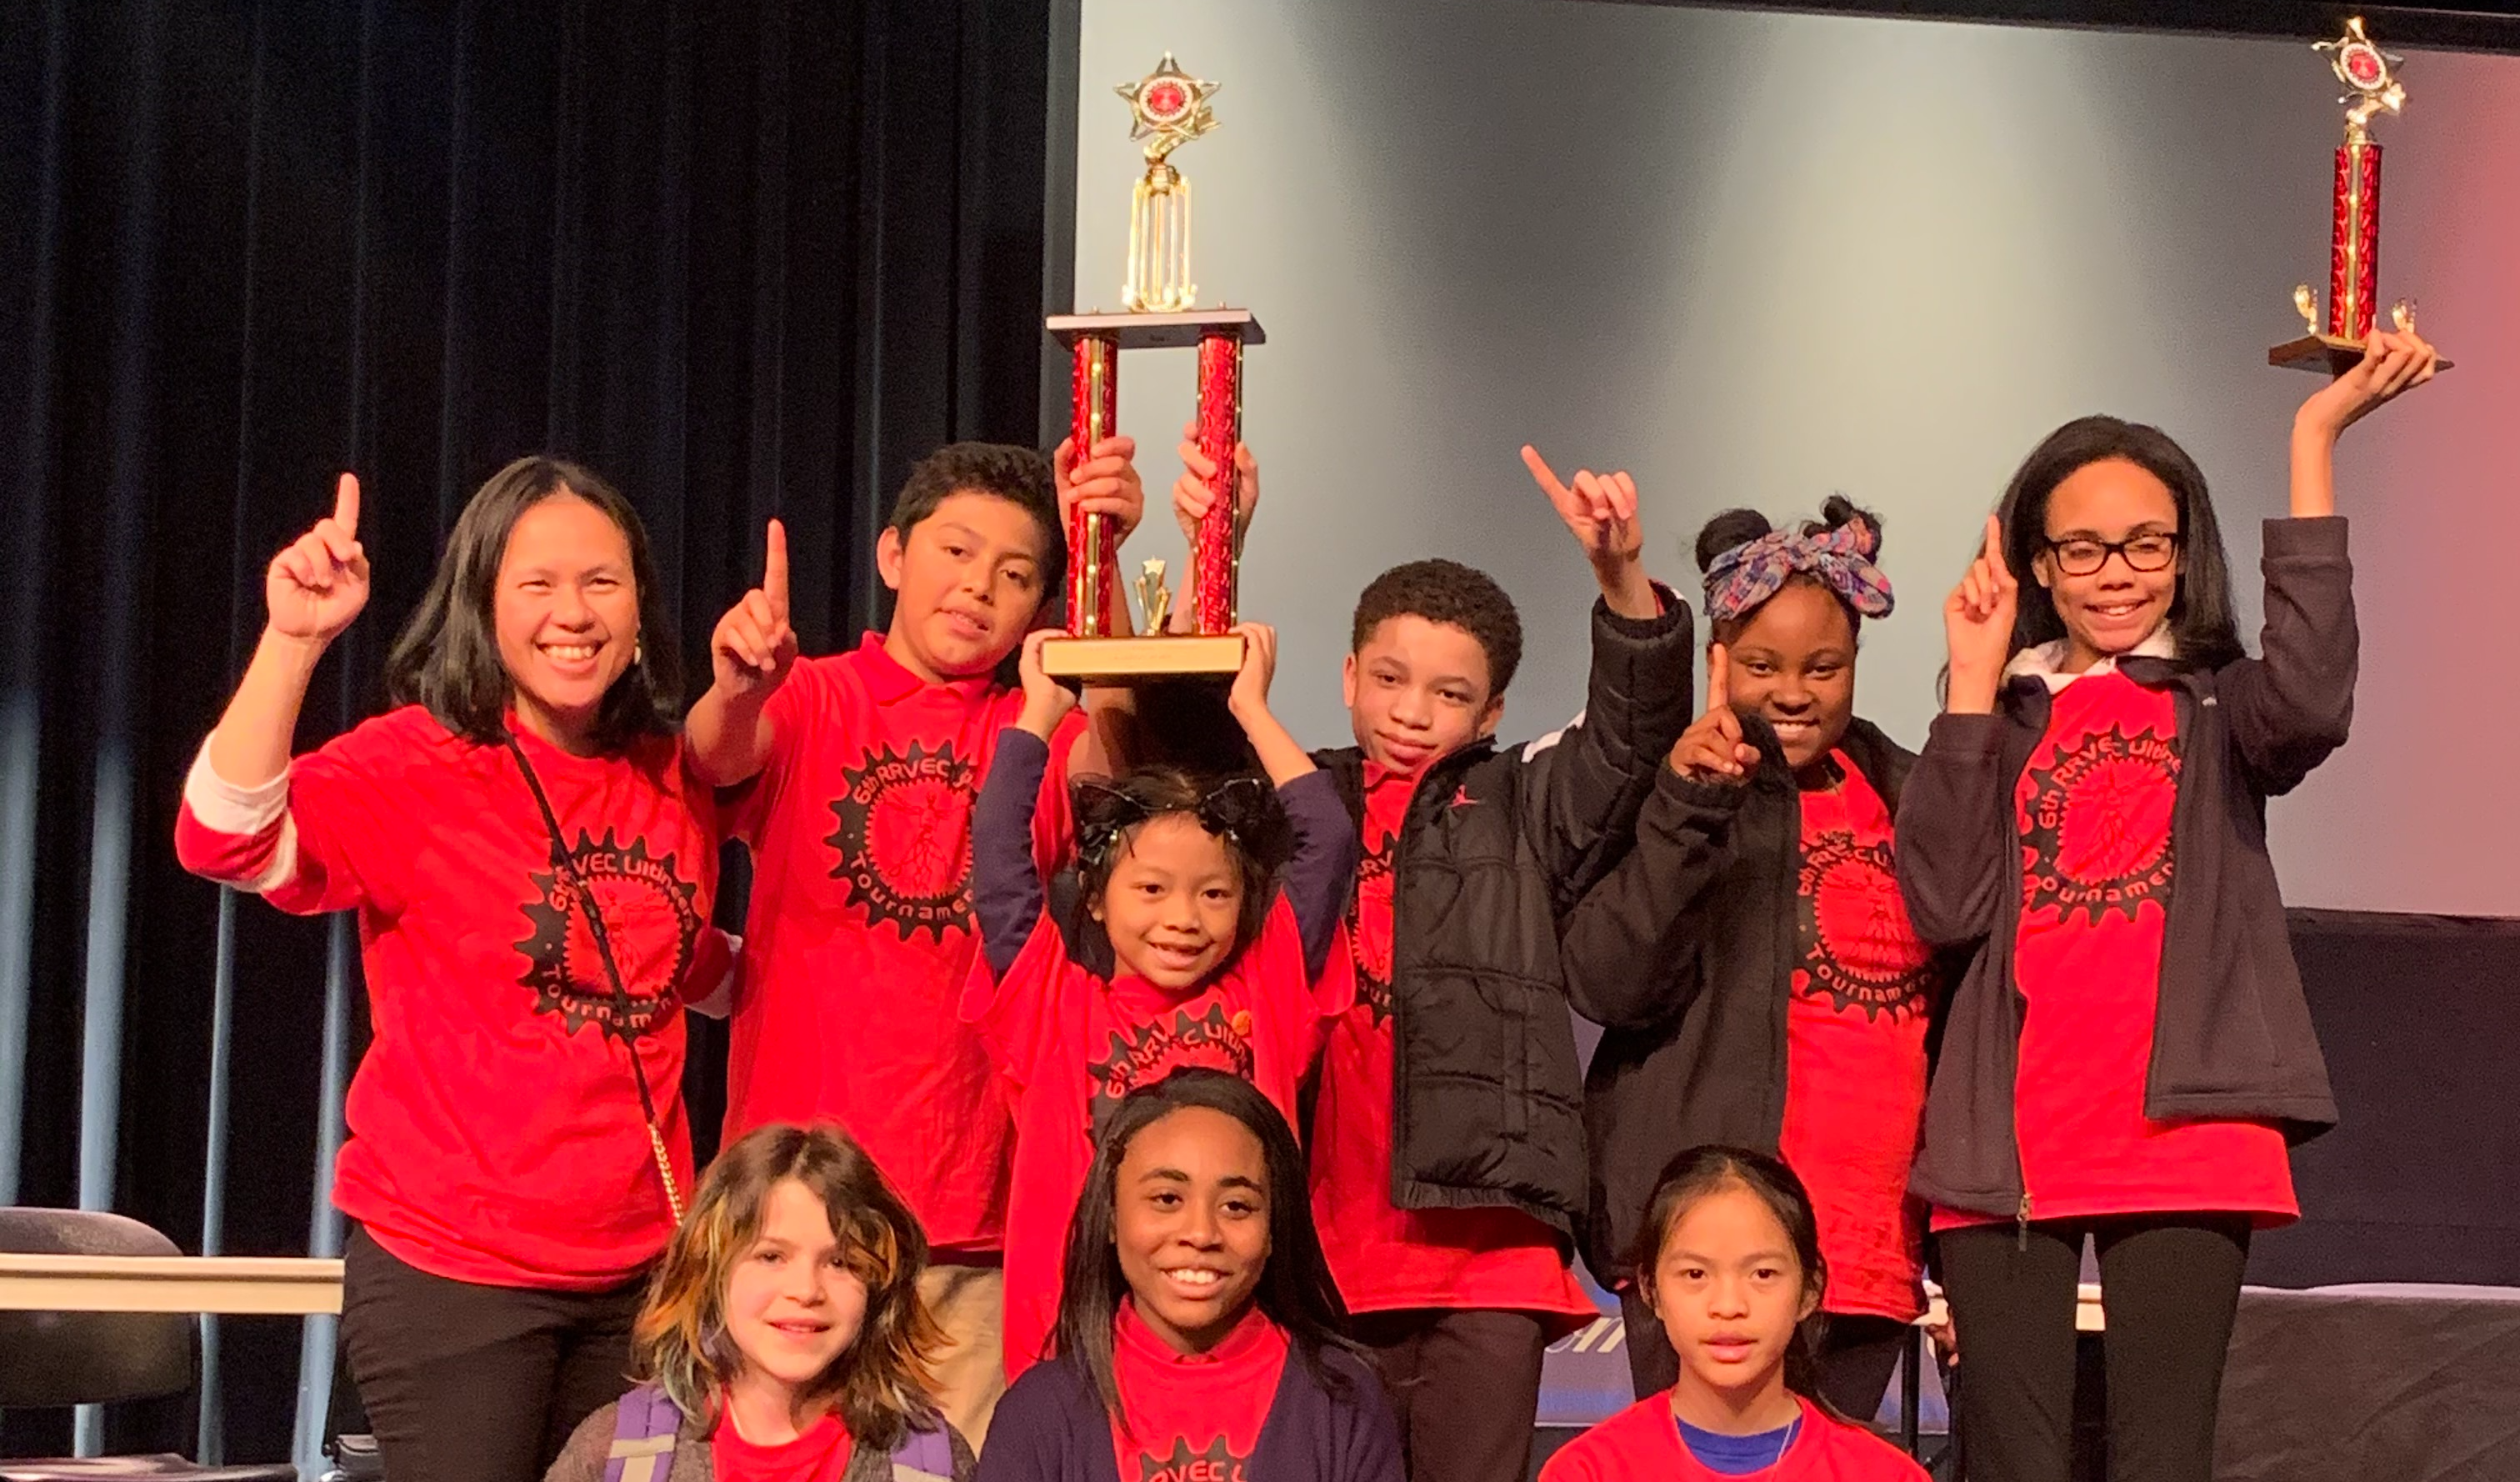 Northside K-8 Students at a competition winning a tropy